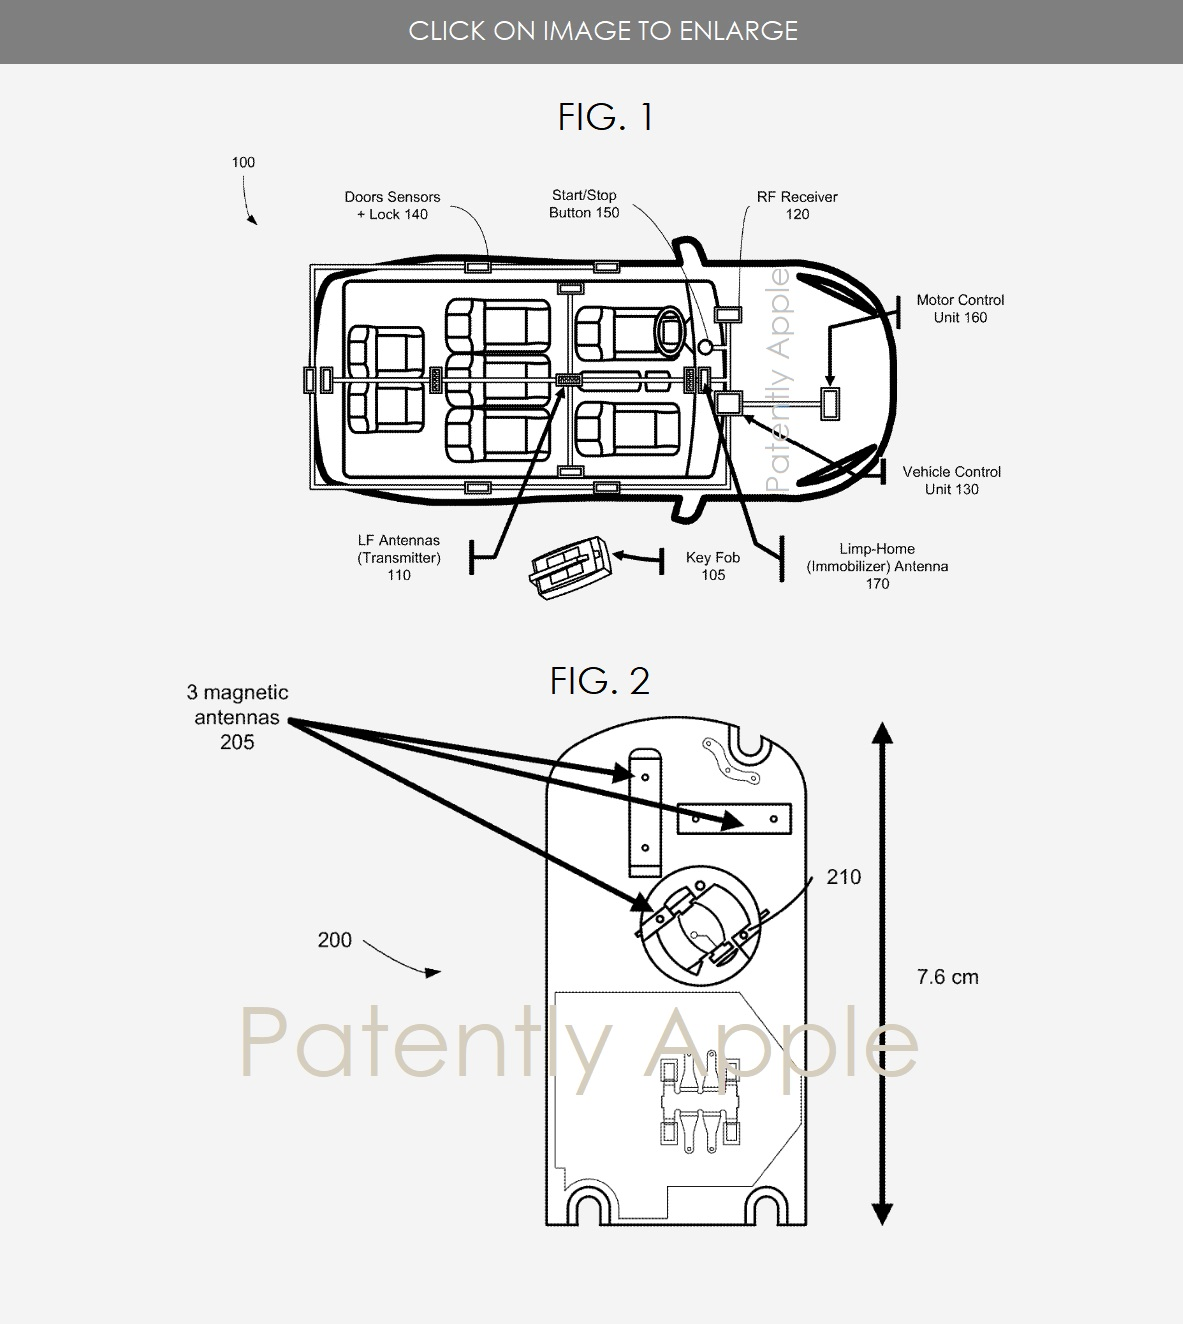 hight resolution of 2 apple car patent figs 1 2